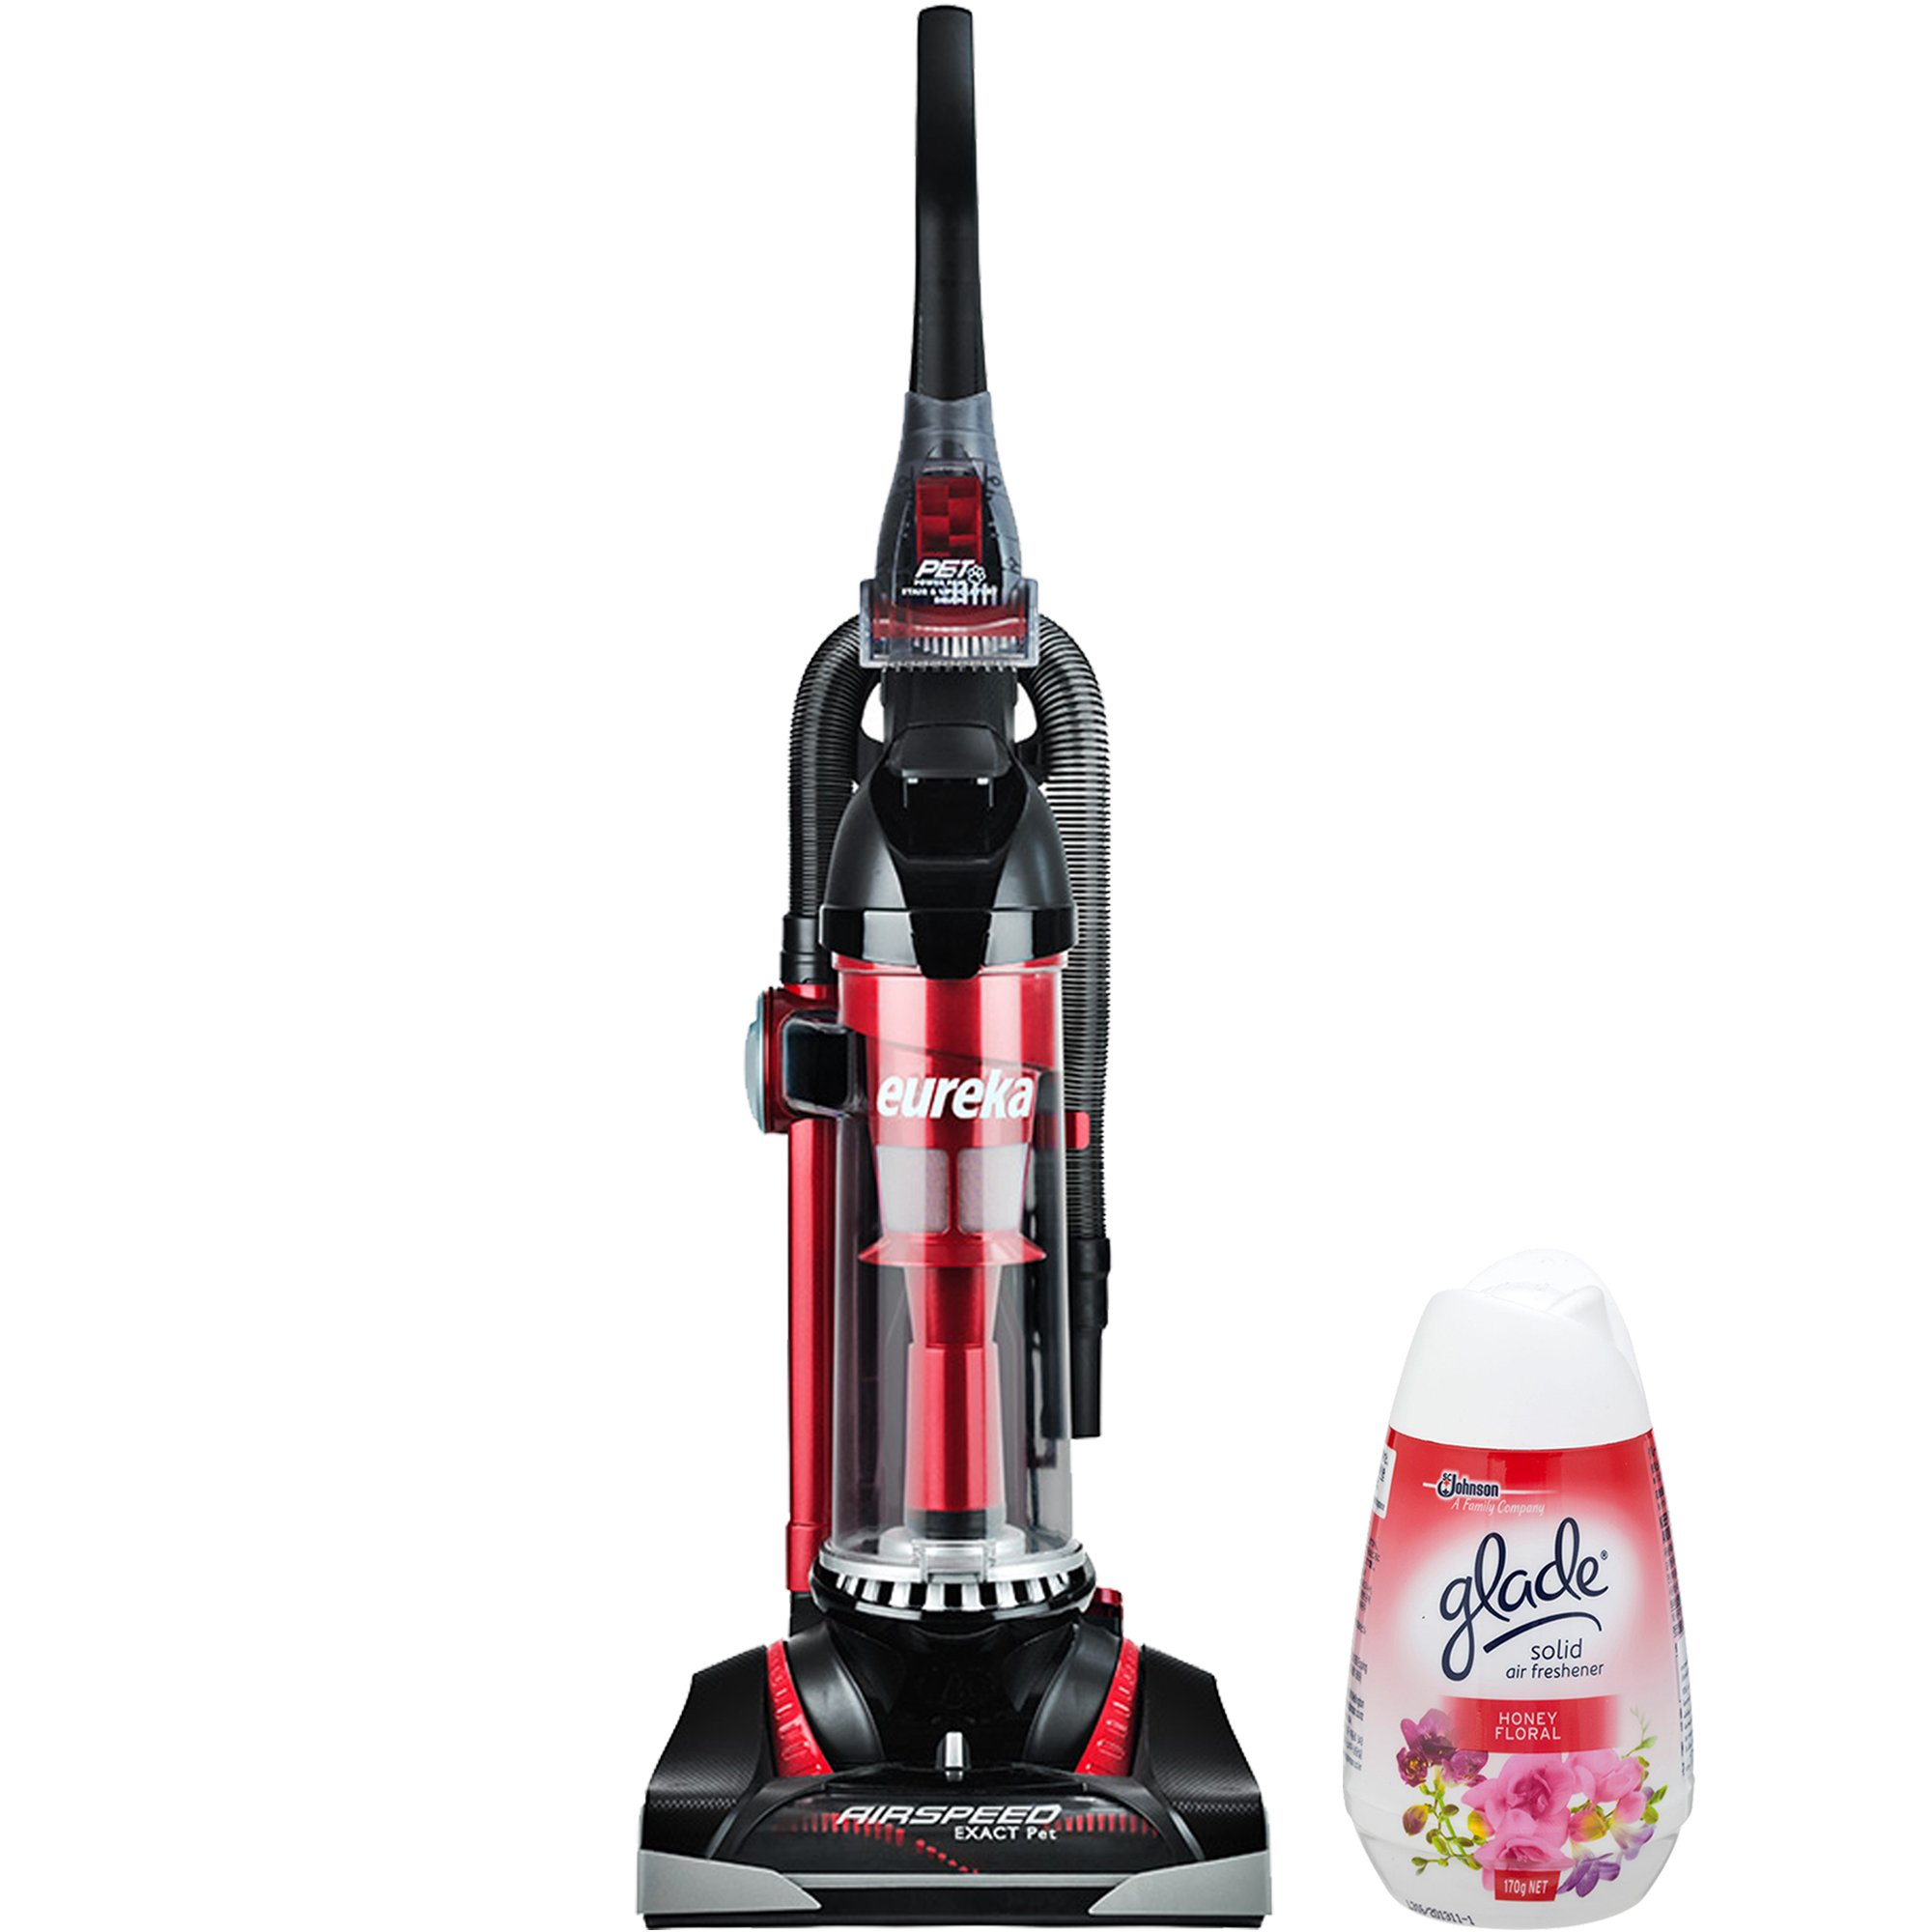 Eureka Airspeed Technology Pet Hair Lightweight Corded Bagless Upright Vacuum Cleaner with Onboard Tools and Air Freshener